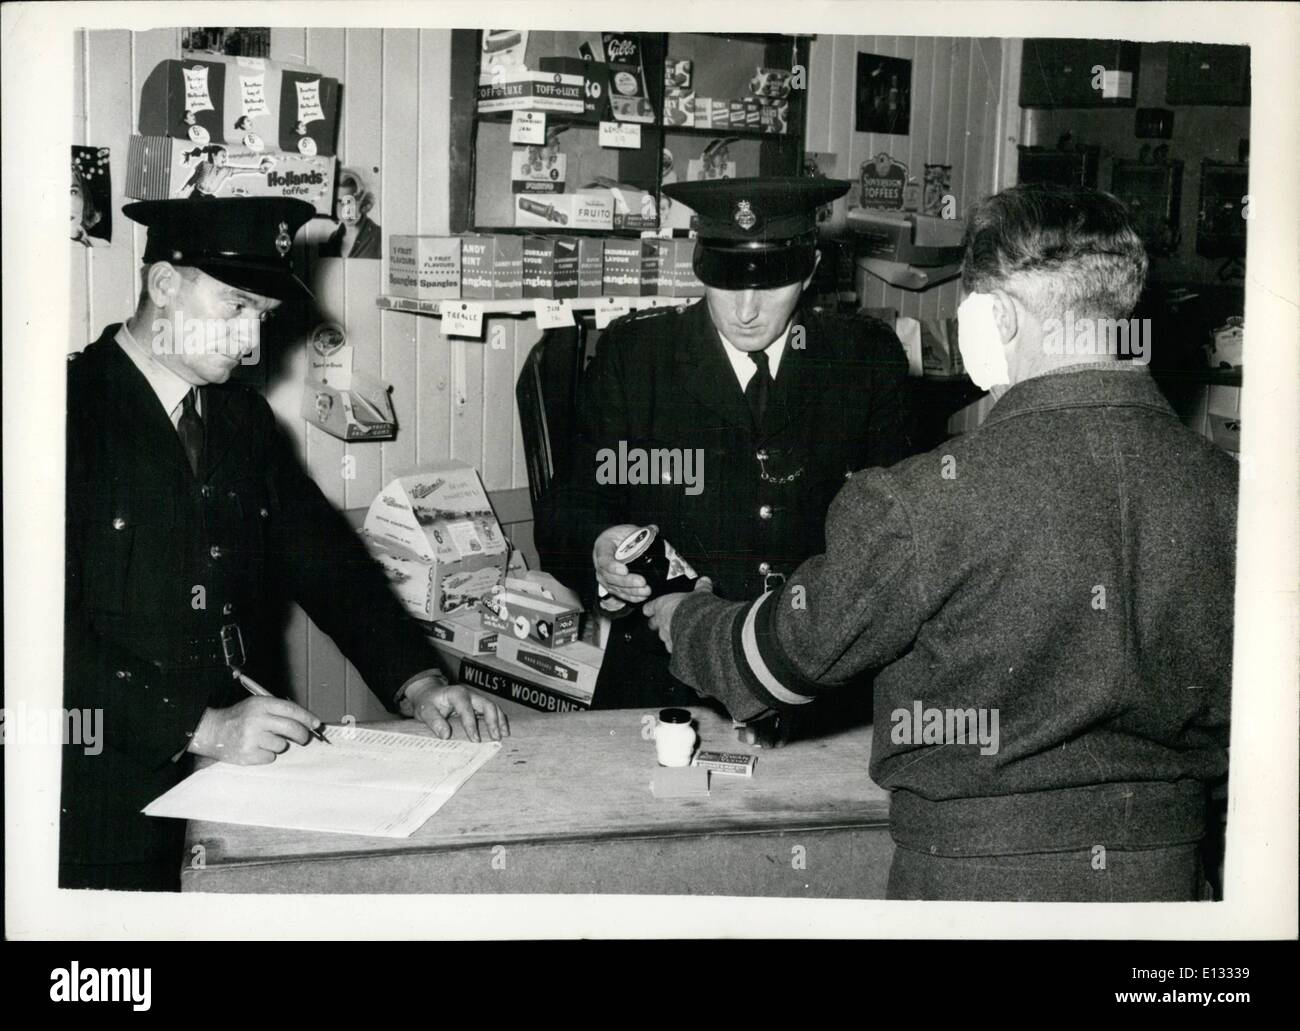 Feb. 26, 2012 - An inmate spending some of the money he has earned at his work in the prison canteen shop. Here he can spend money on sweets, tobacco, jam, hair cream or razor blades, matches etc. He is allowed to earn up to a maximum of four shillings. - Stock Image